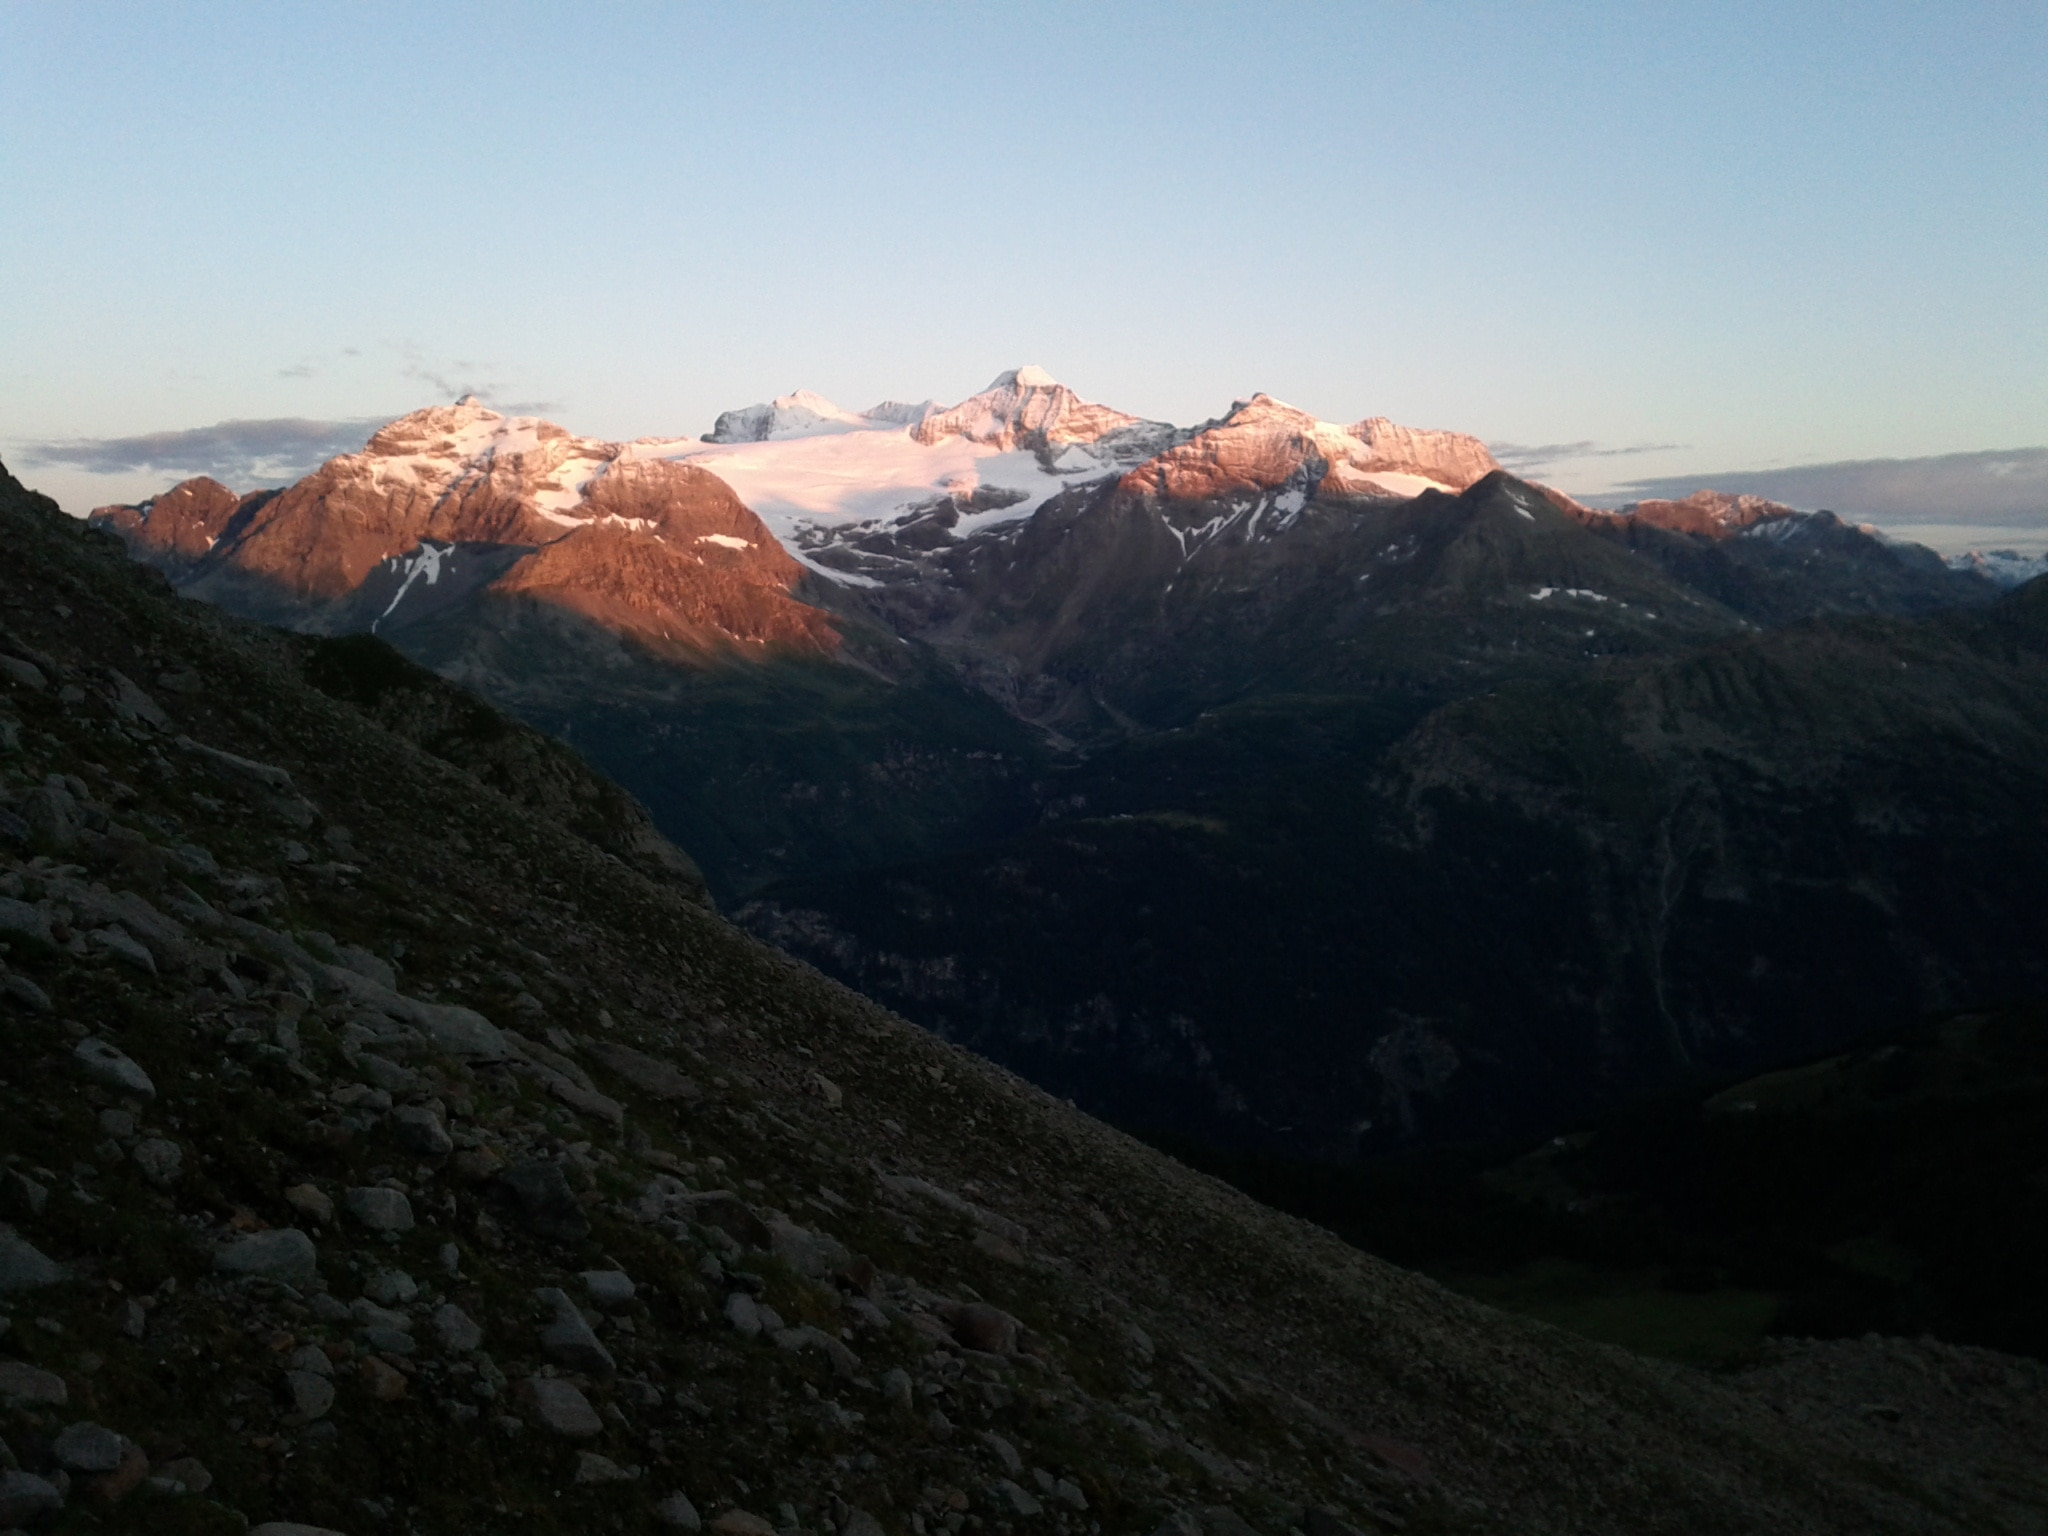 Sunrise over the Bernina group from just above my camp at Lagh dal Teo.